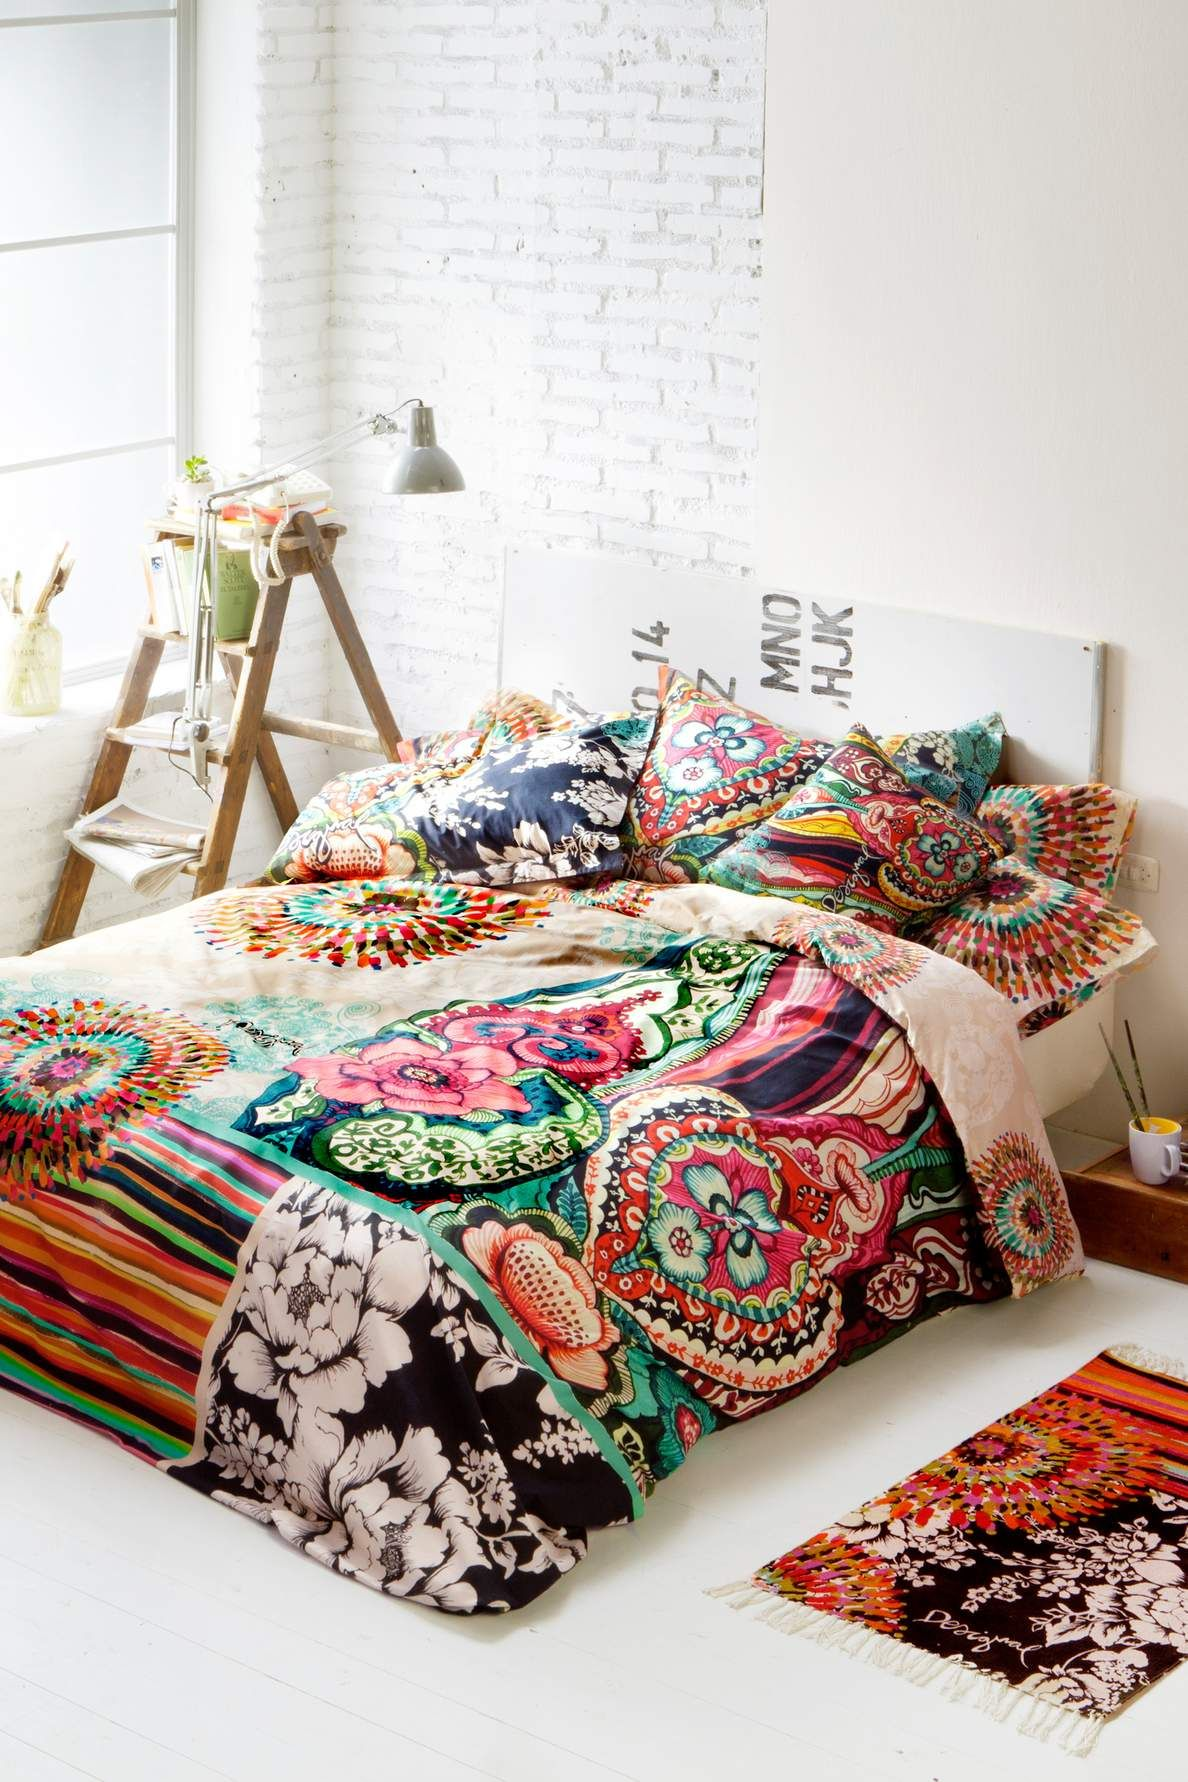 Parure De Lit Chic Housse De Couette Desigual Black And White Bedding